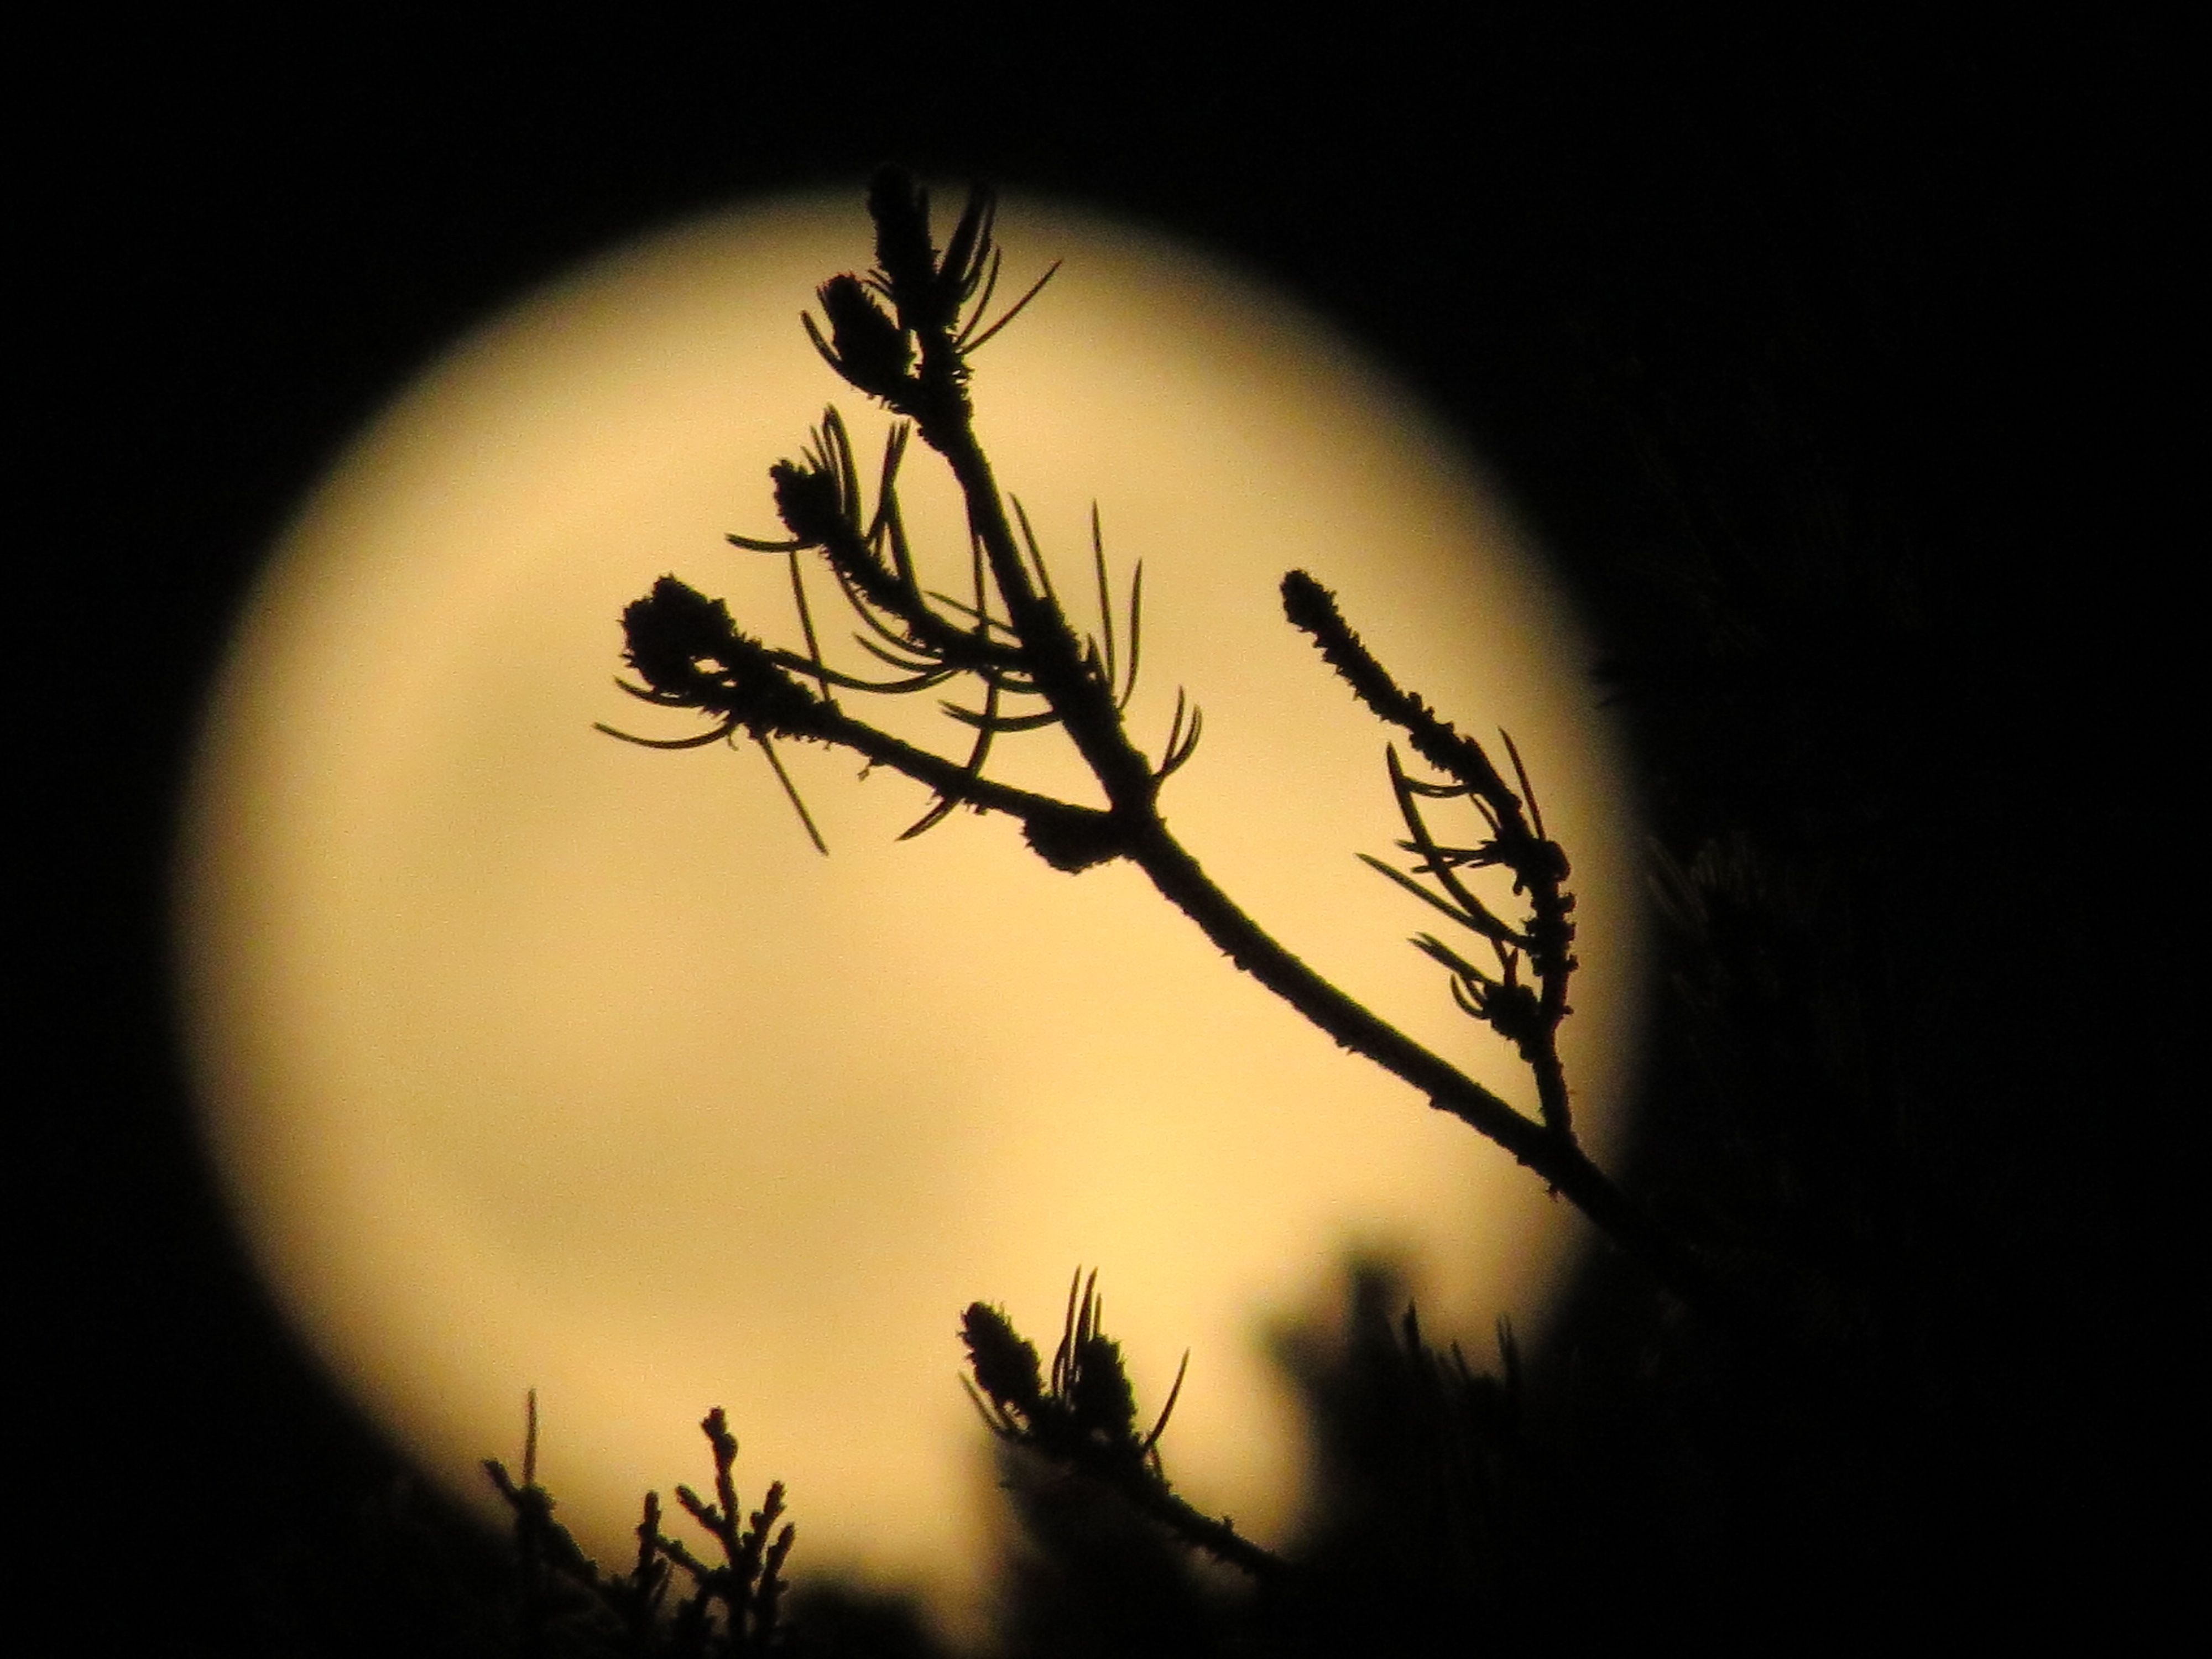 Pinyon Pine branch in front of the Super Moon July 12, 2014